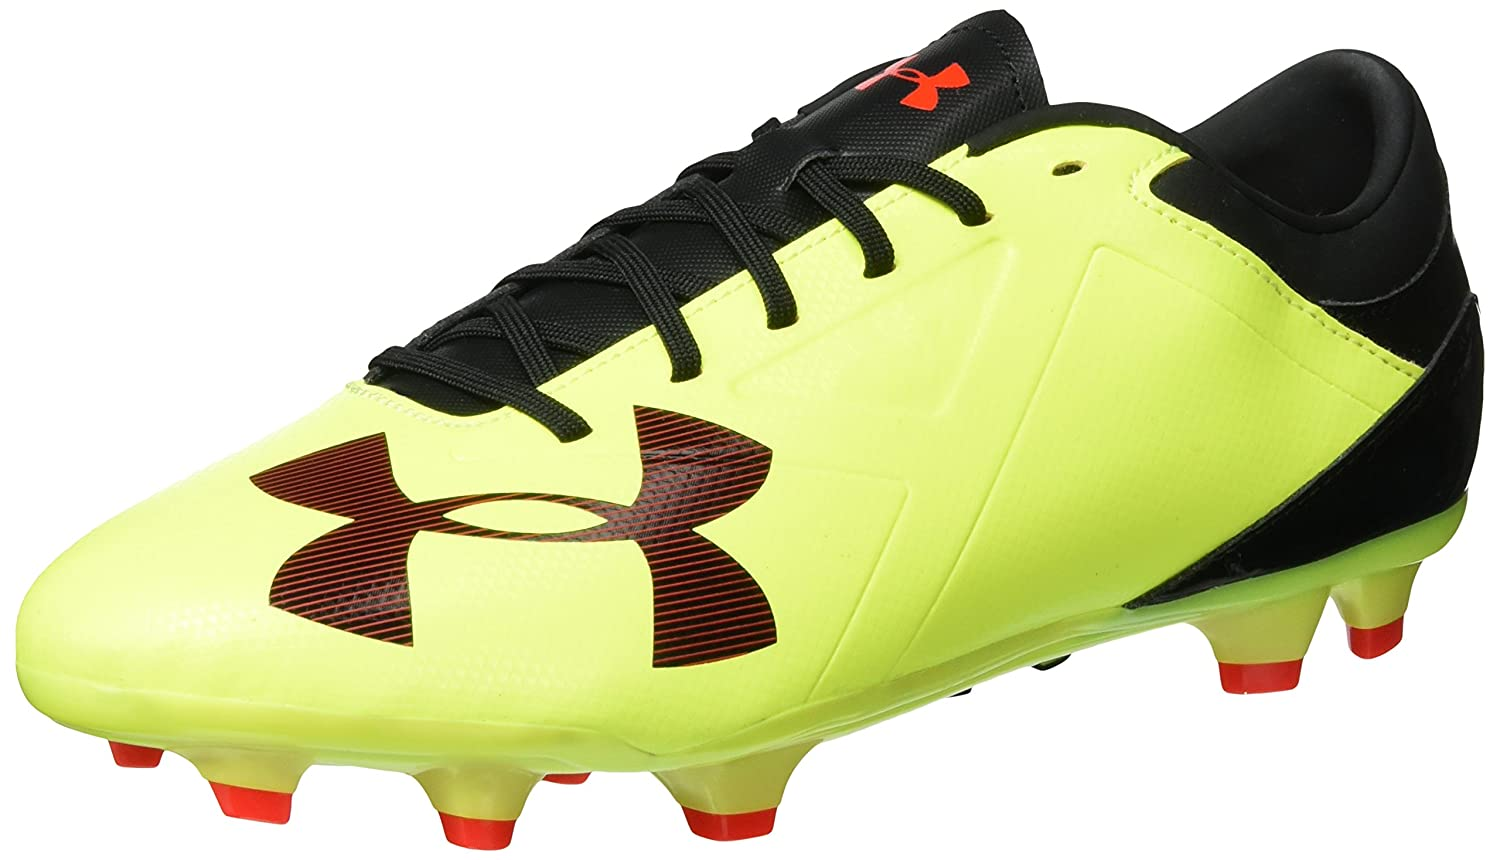 Under Armour Men's Spotlight DL FG Soccer Cleat B01IAIAZJE 11.5 D(M) US|High-vis Yellow/Rocket Red/Black